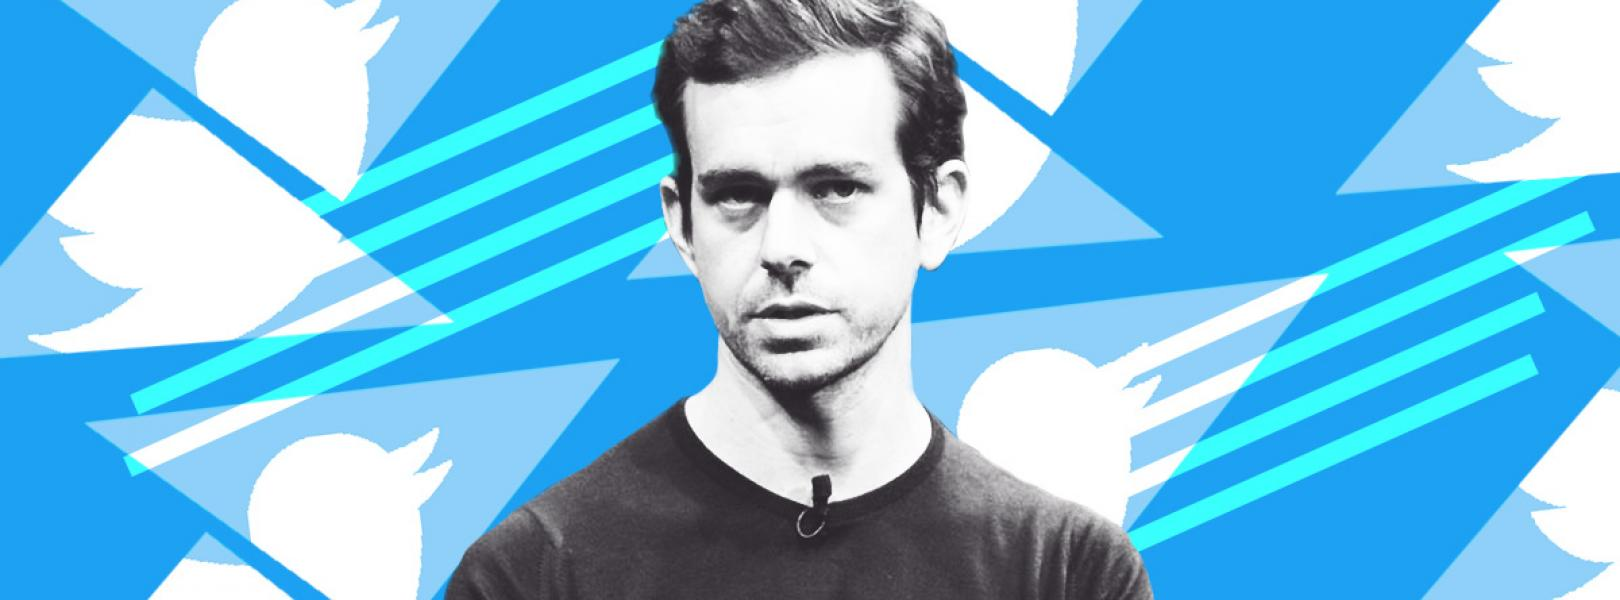 Twitter CEO Jack Dorsey standing in front of Twitter's logo